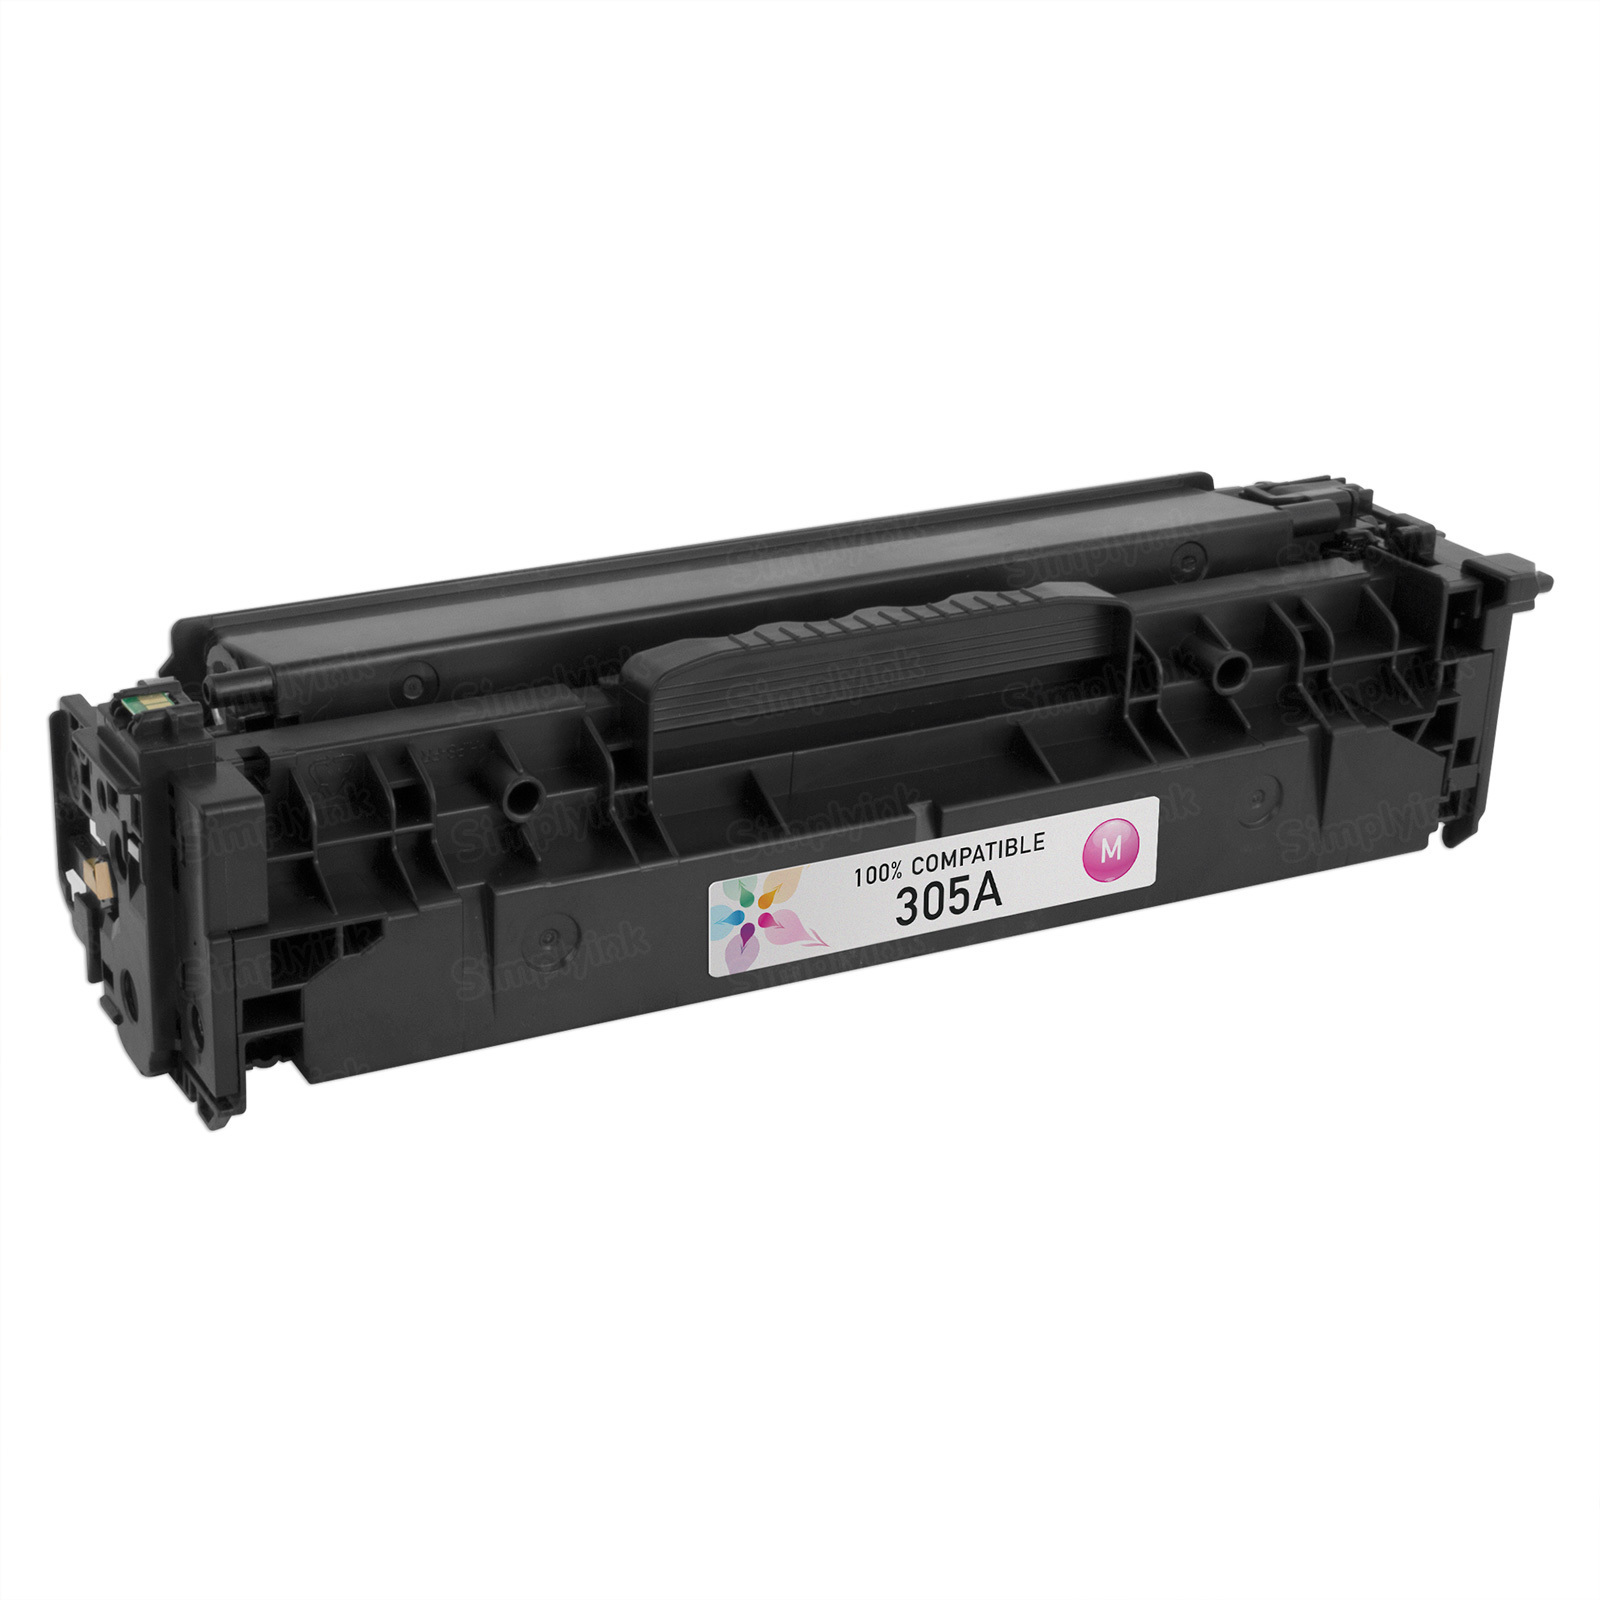 Replacement Magenta Toner for HP 305A